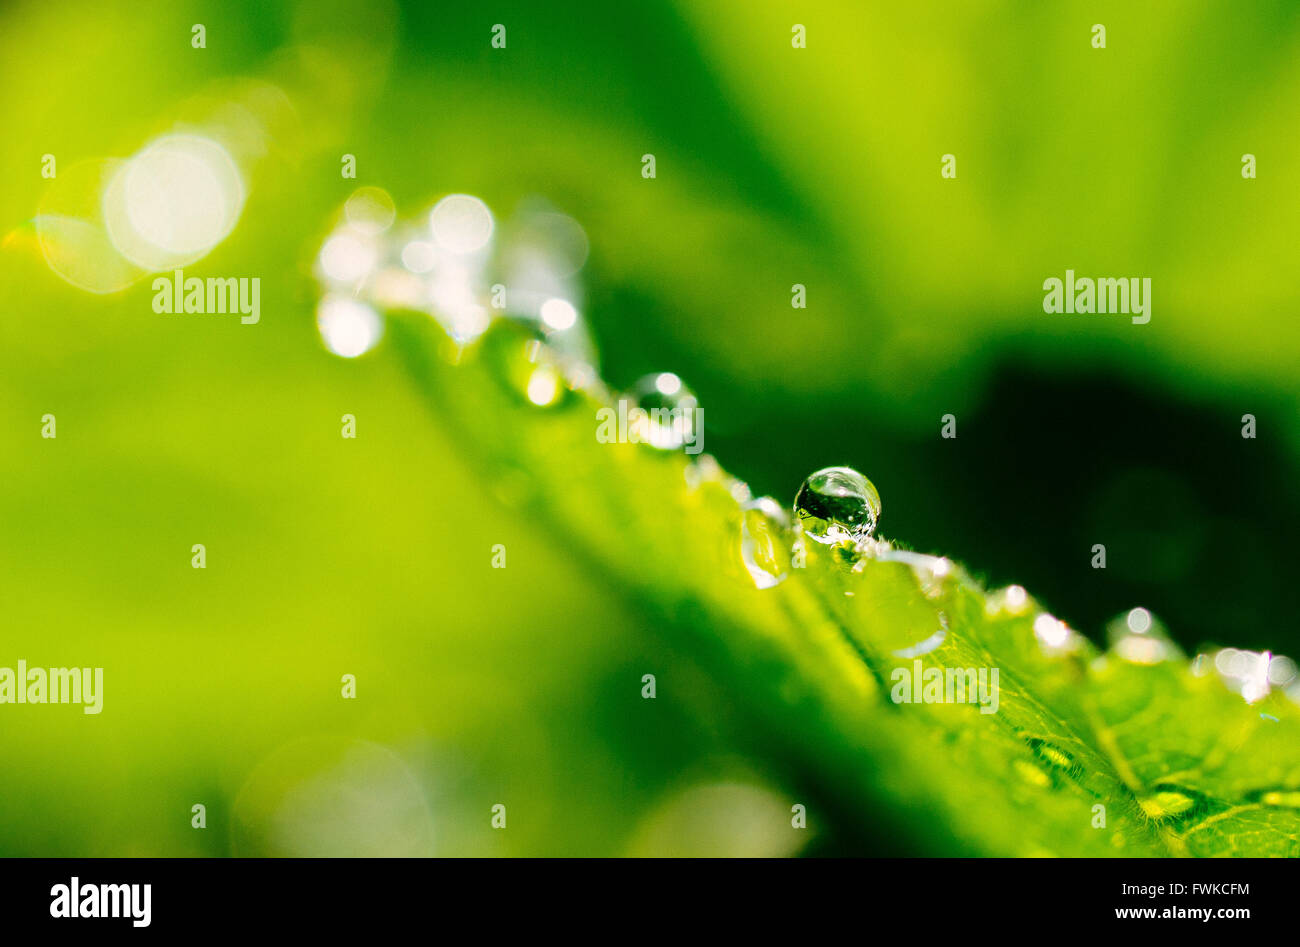 Detail Of Dew Drops On Leaf - Stock Image